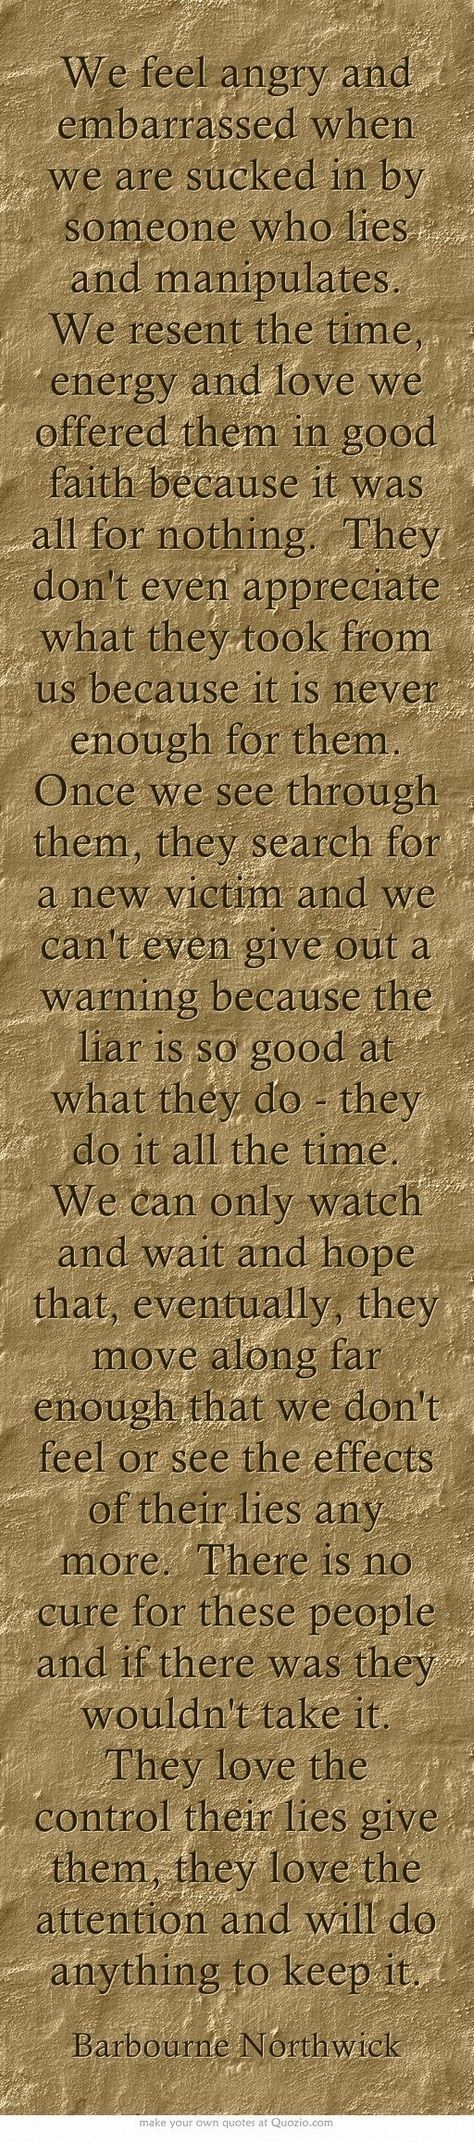 We feel angry and embarrassed when we are sucked in by someone who lies and manipulates. We resent the time, energy and love we offered them in good faith because it was all for nothing. They don't even appreciate what they took from us because it is never enough for them. Once we see through them, they search for a new victim and we can't even give out a warning because the liar is so good at what they do - they do it all the time.: